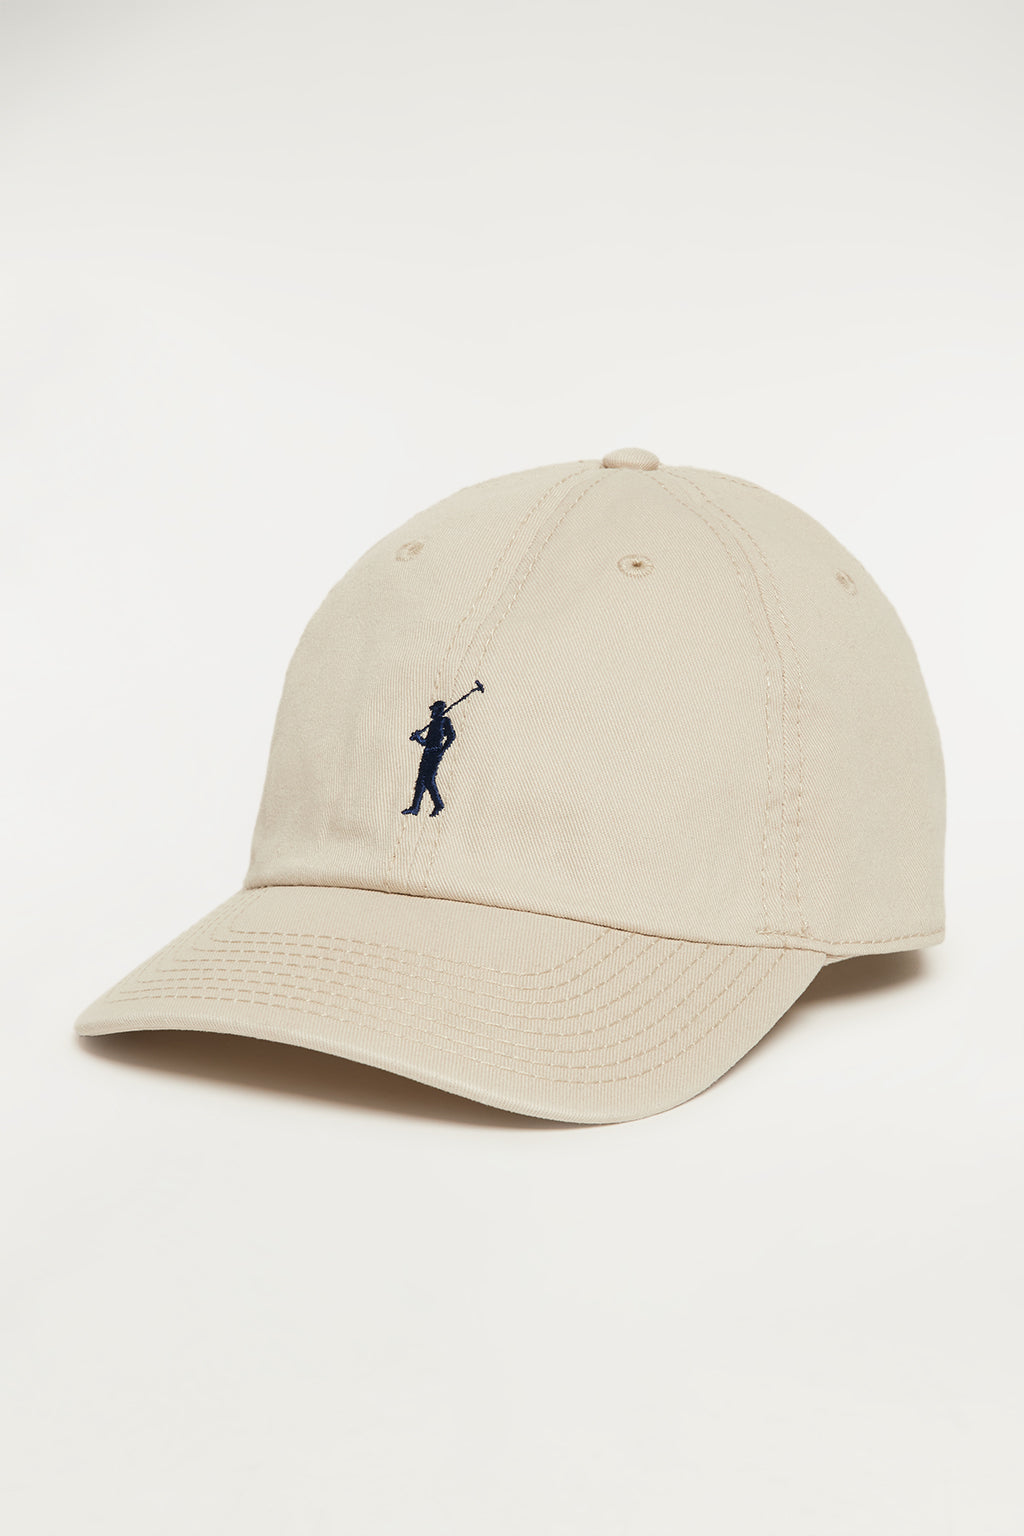 Beige cap with contrast embroidered logo